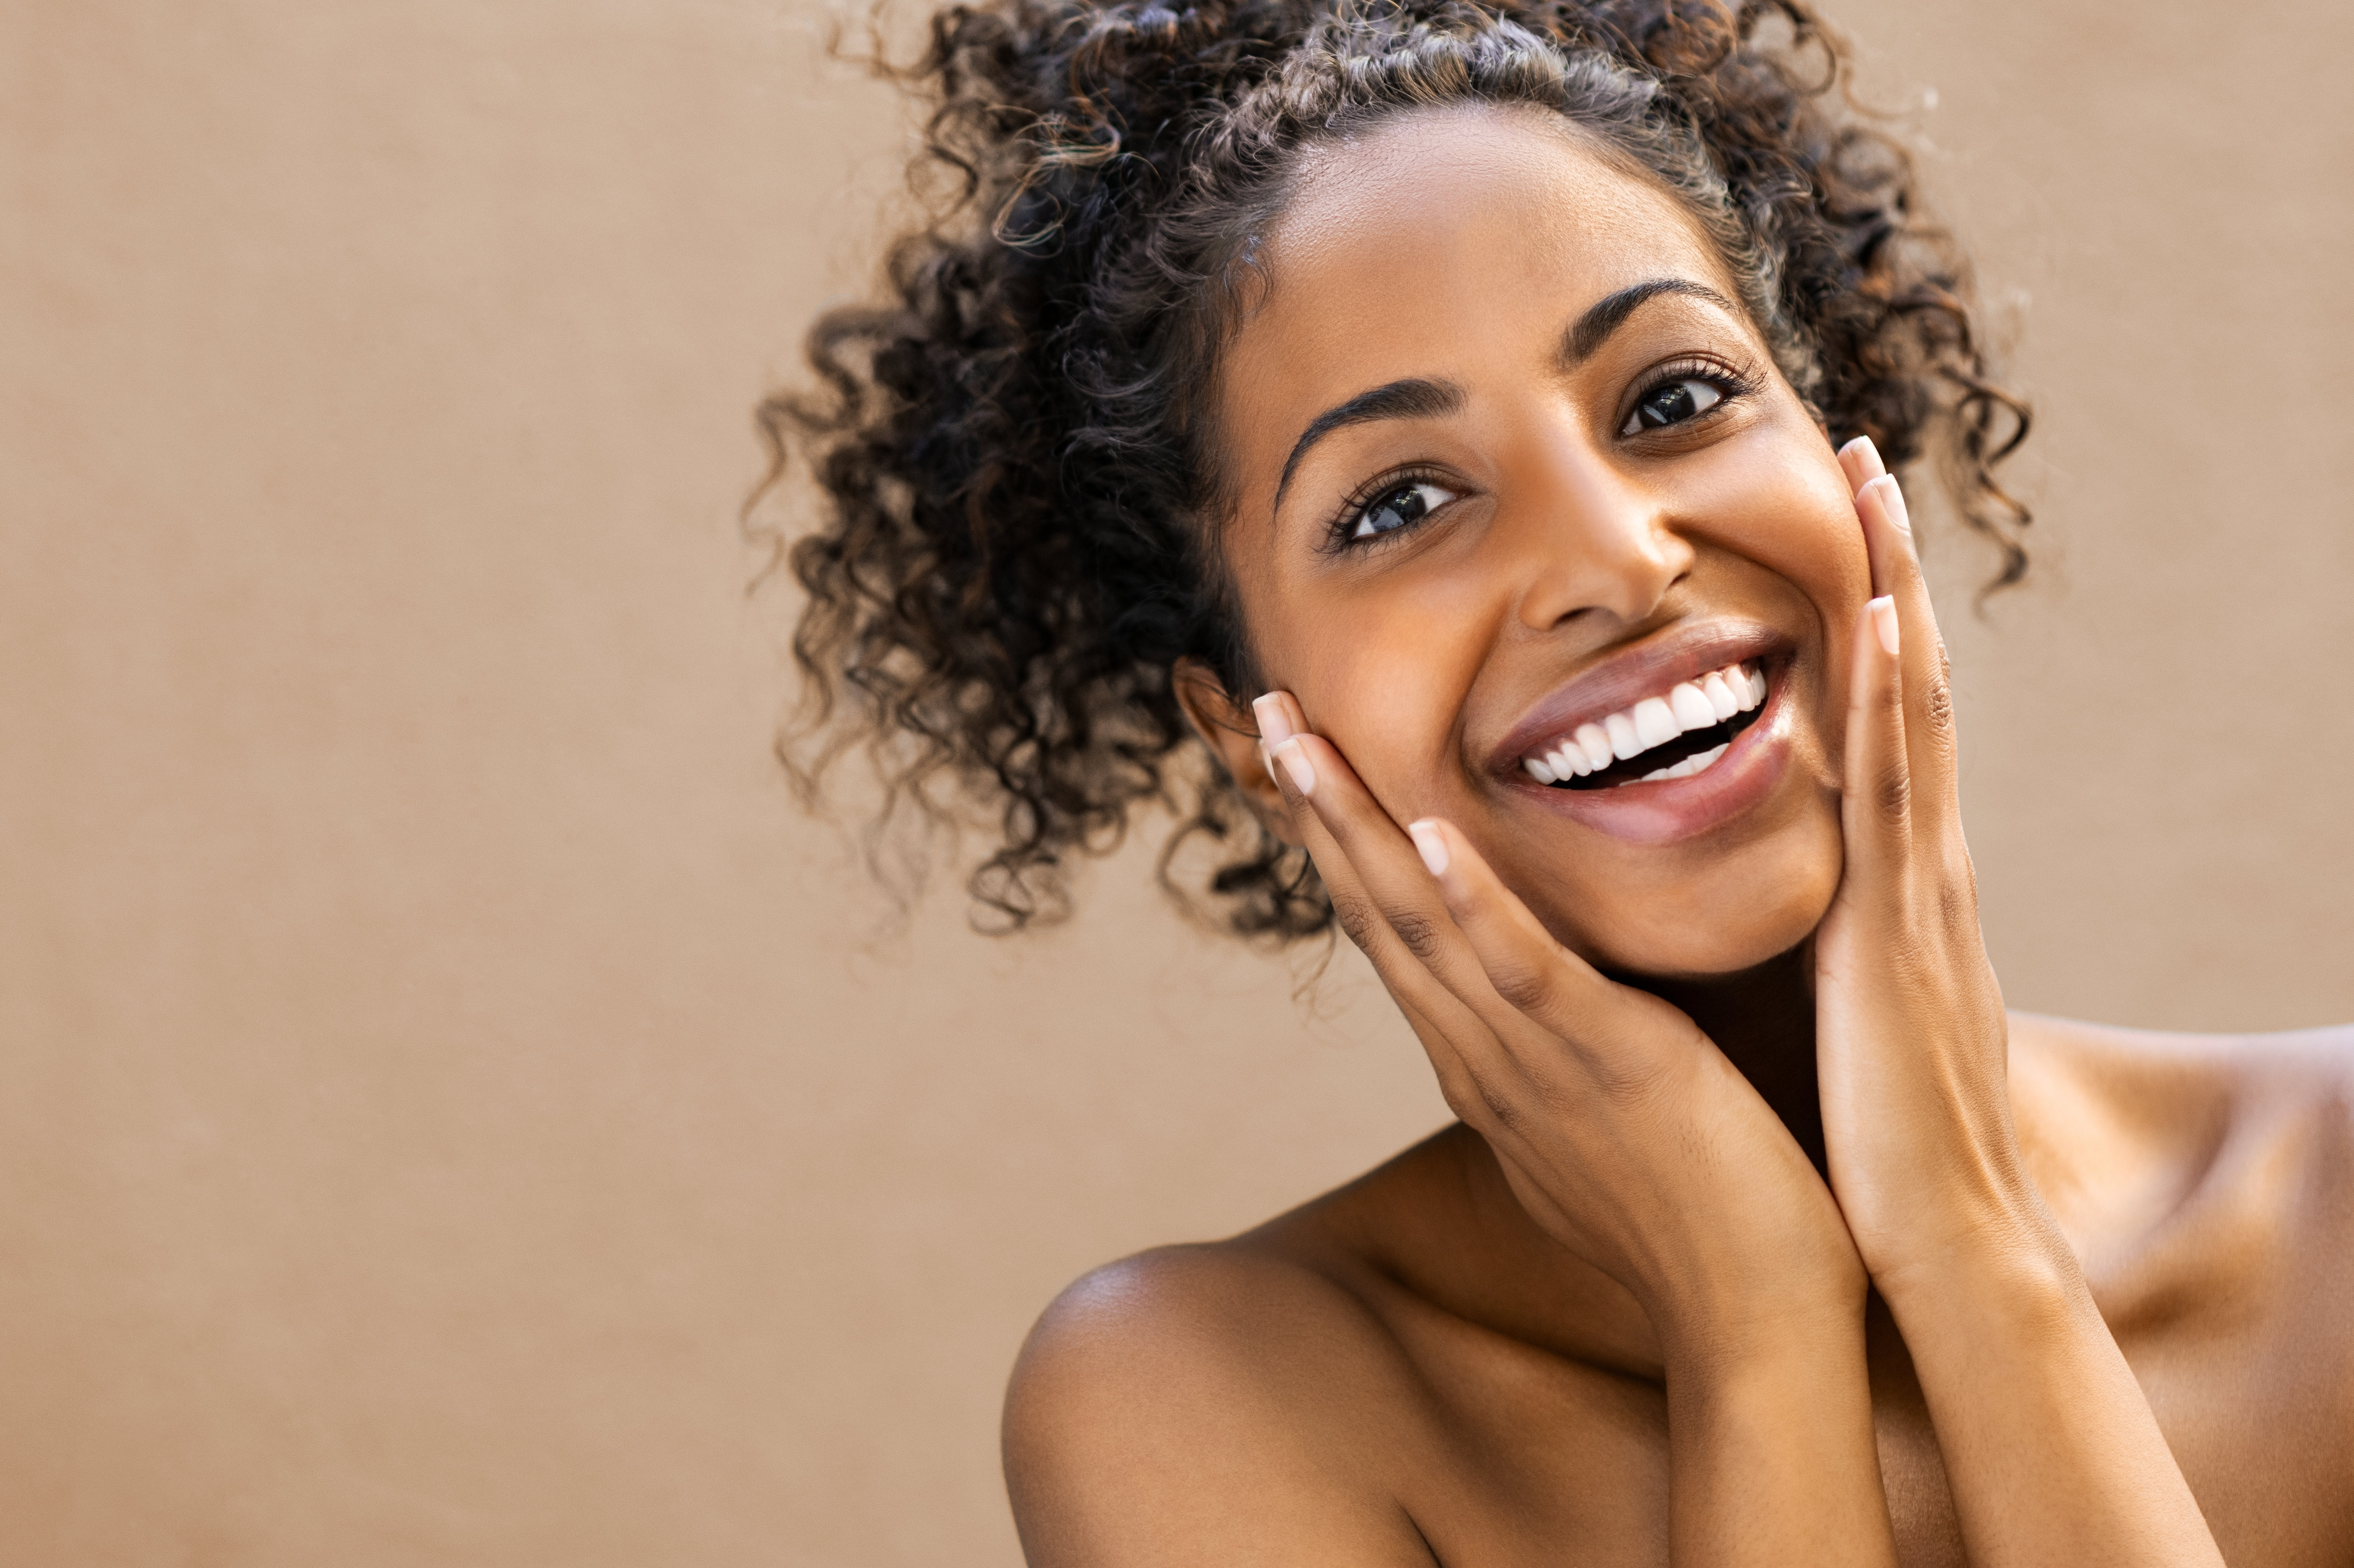 Woman with clear skin | Shutterstock